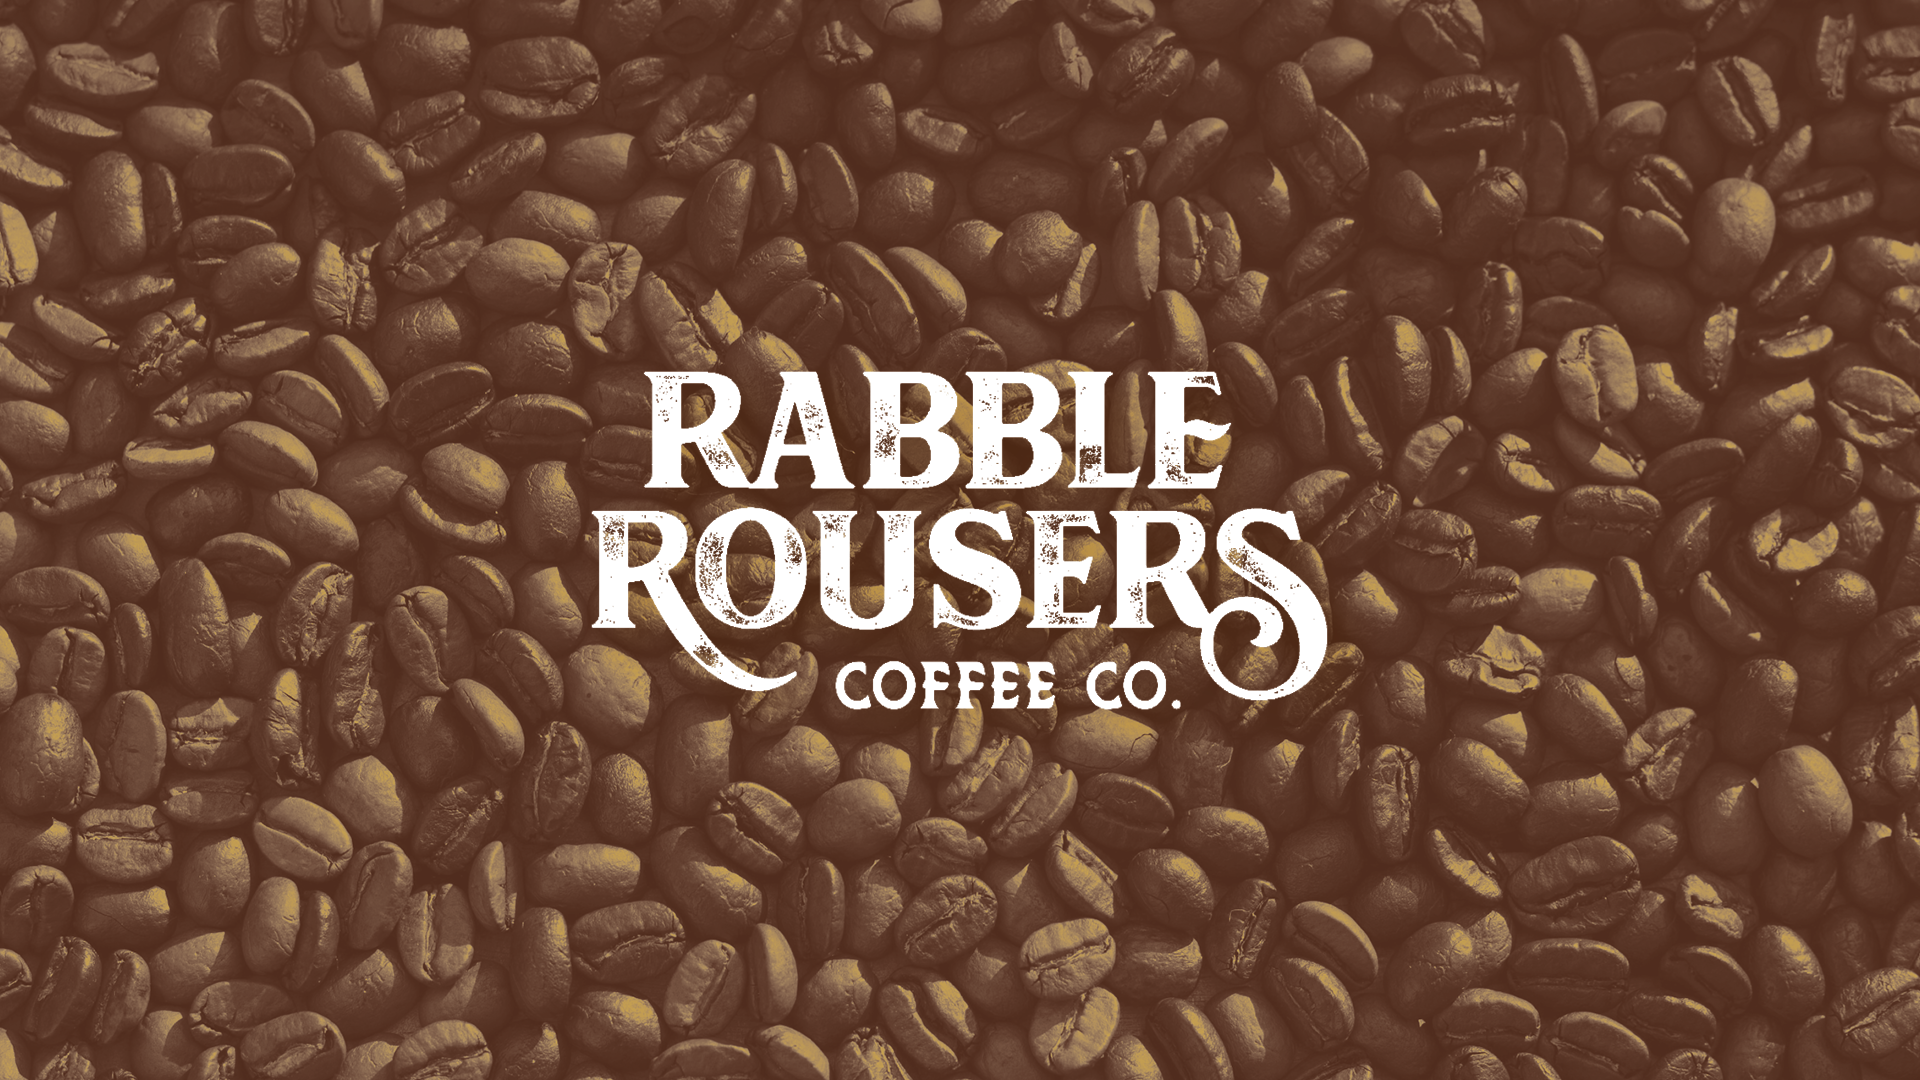 Rabble Rousers Coffee Co. -